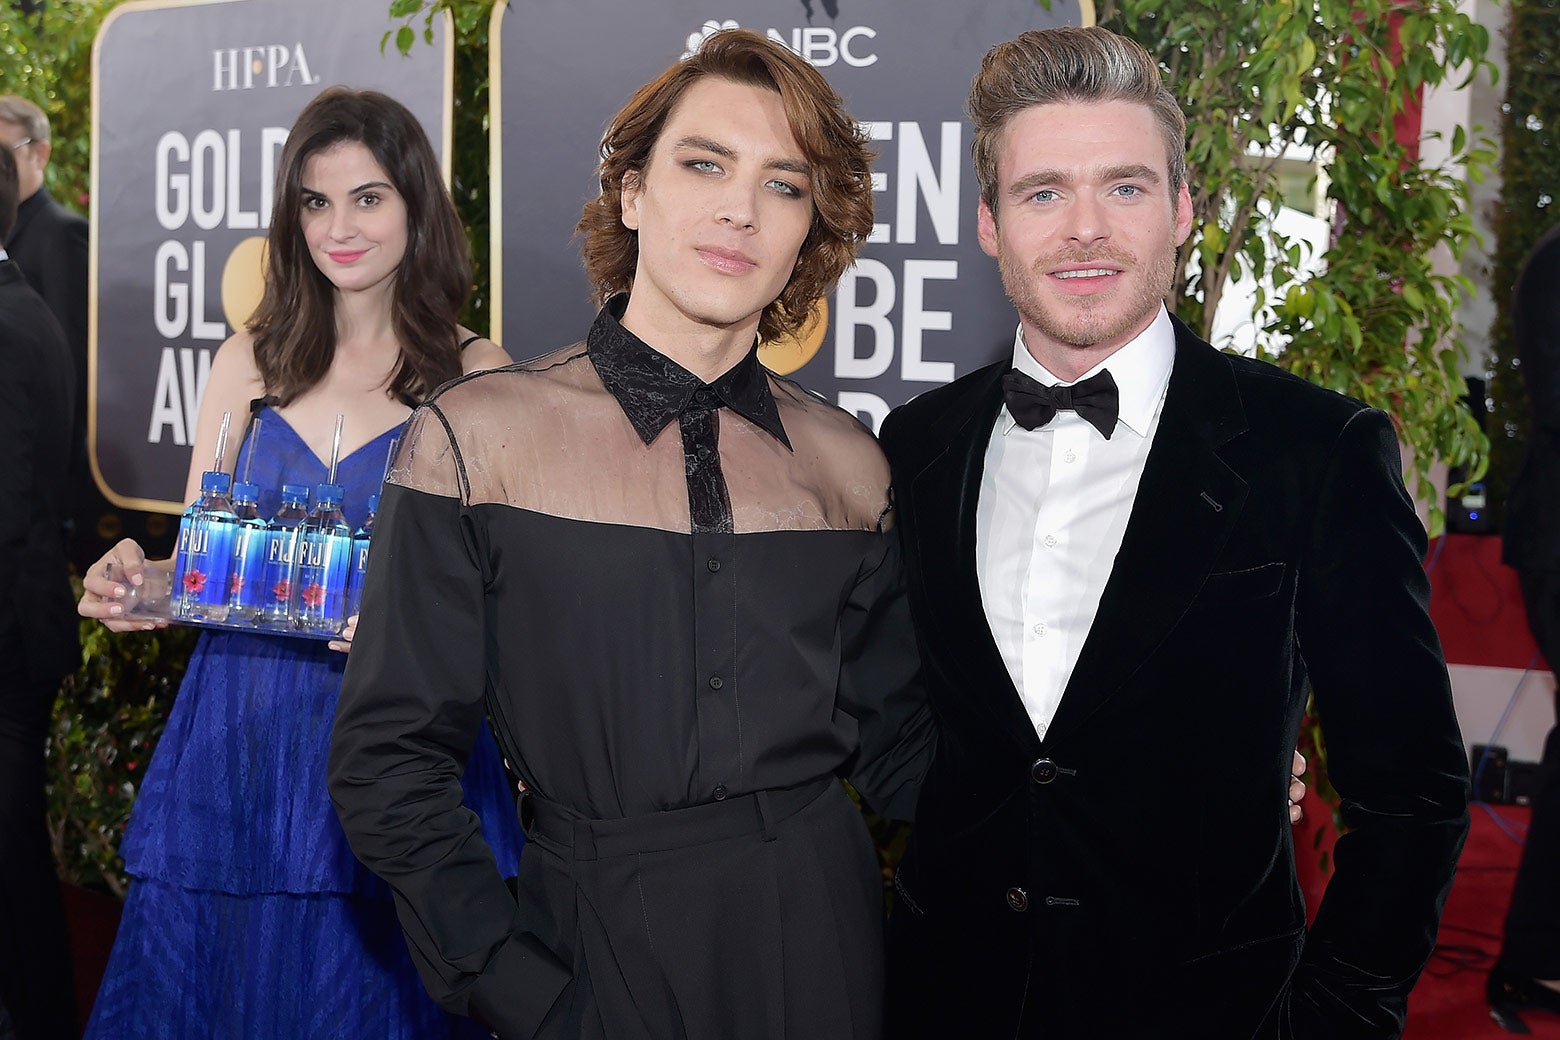 Actors Cody Fern and Richard Madden photobombed by Fiji Water Girl at the 76th Annual Golden Globe Awards on January 6, 2019 at the Beverly Hilton in Los Angeles, California.